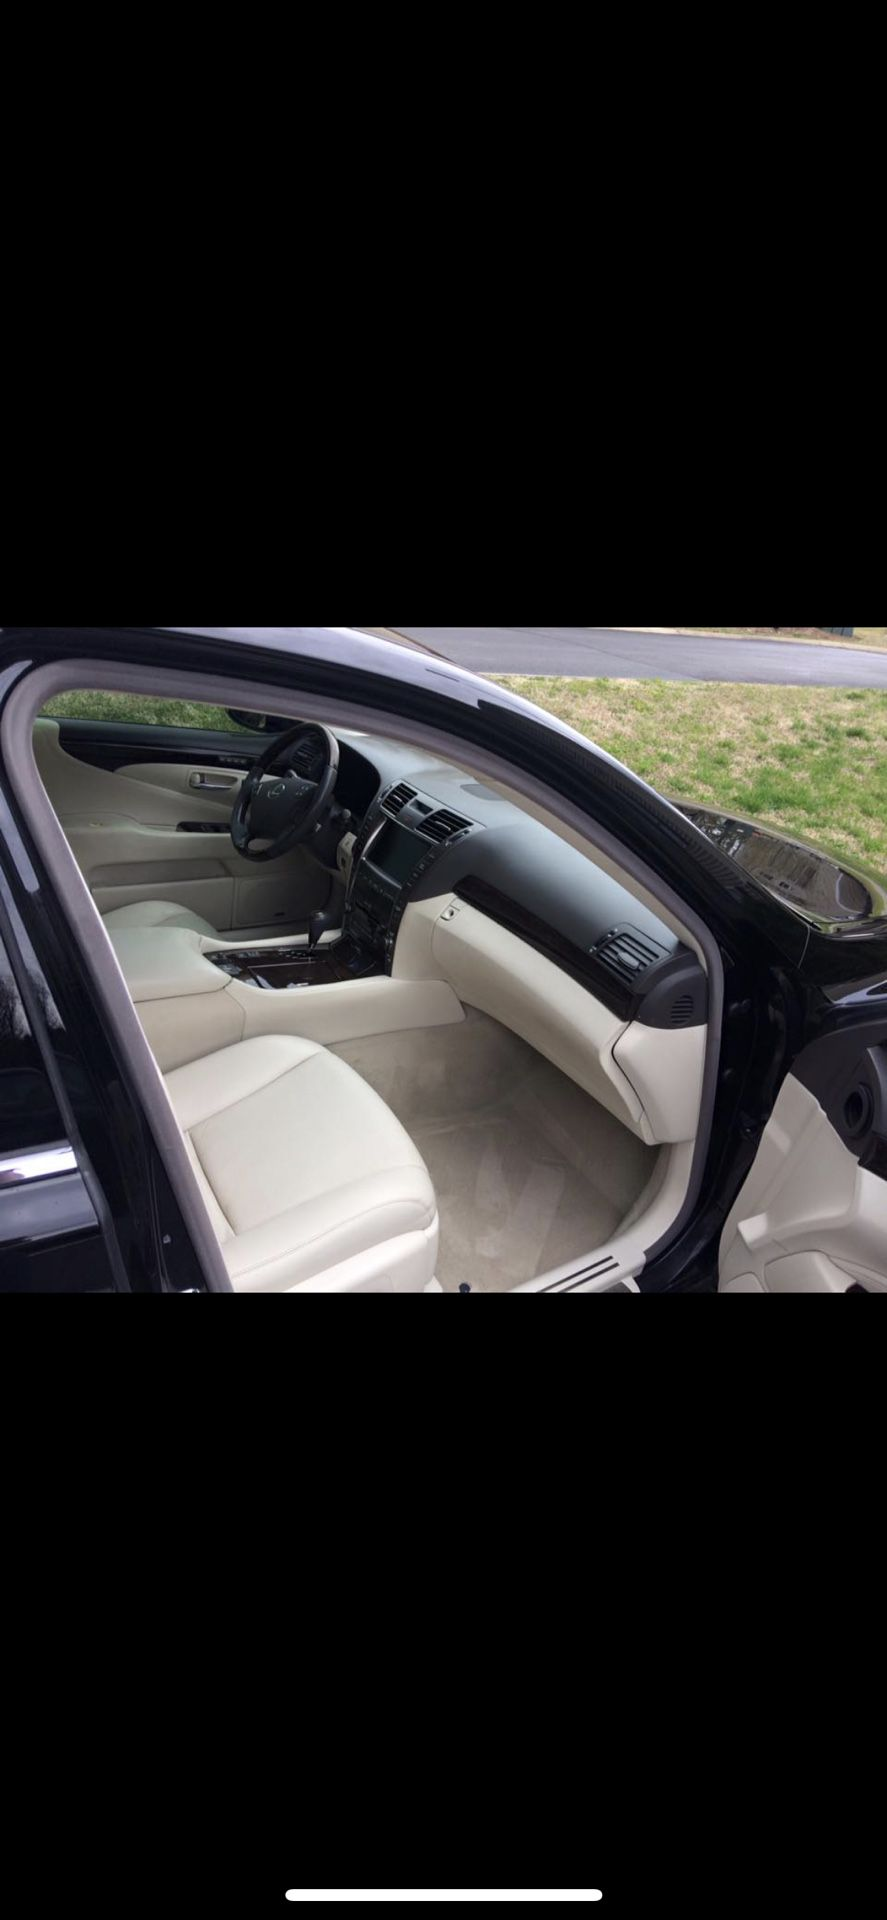 LS460 . Clean title. No any issues.$8000